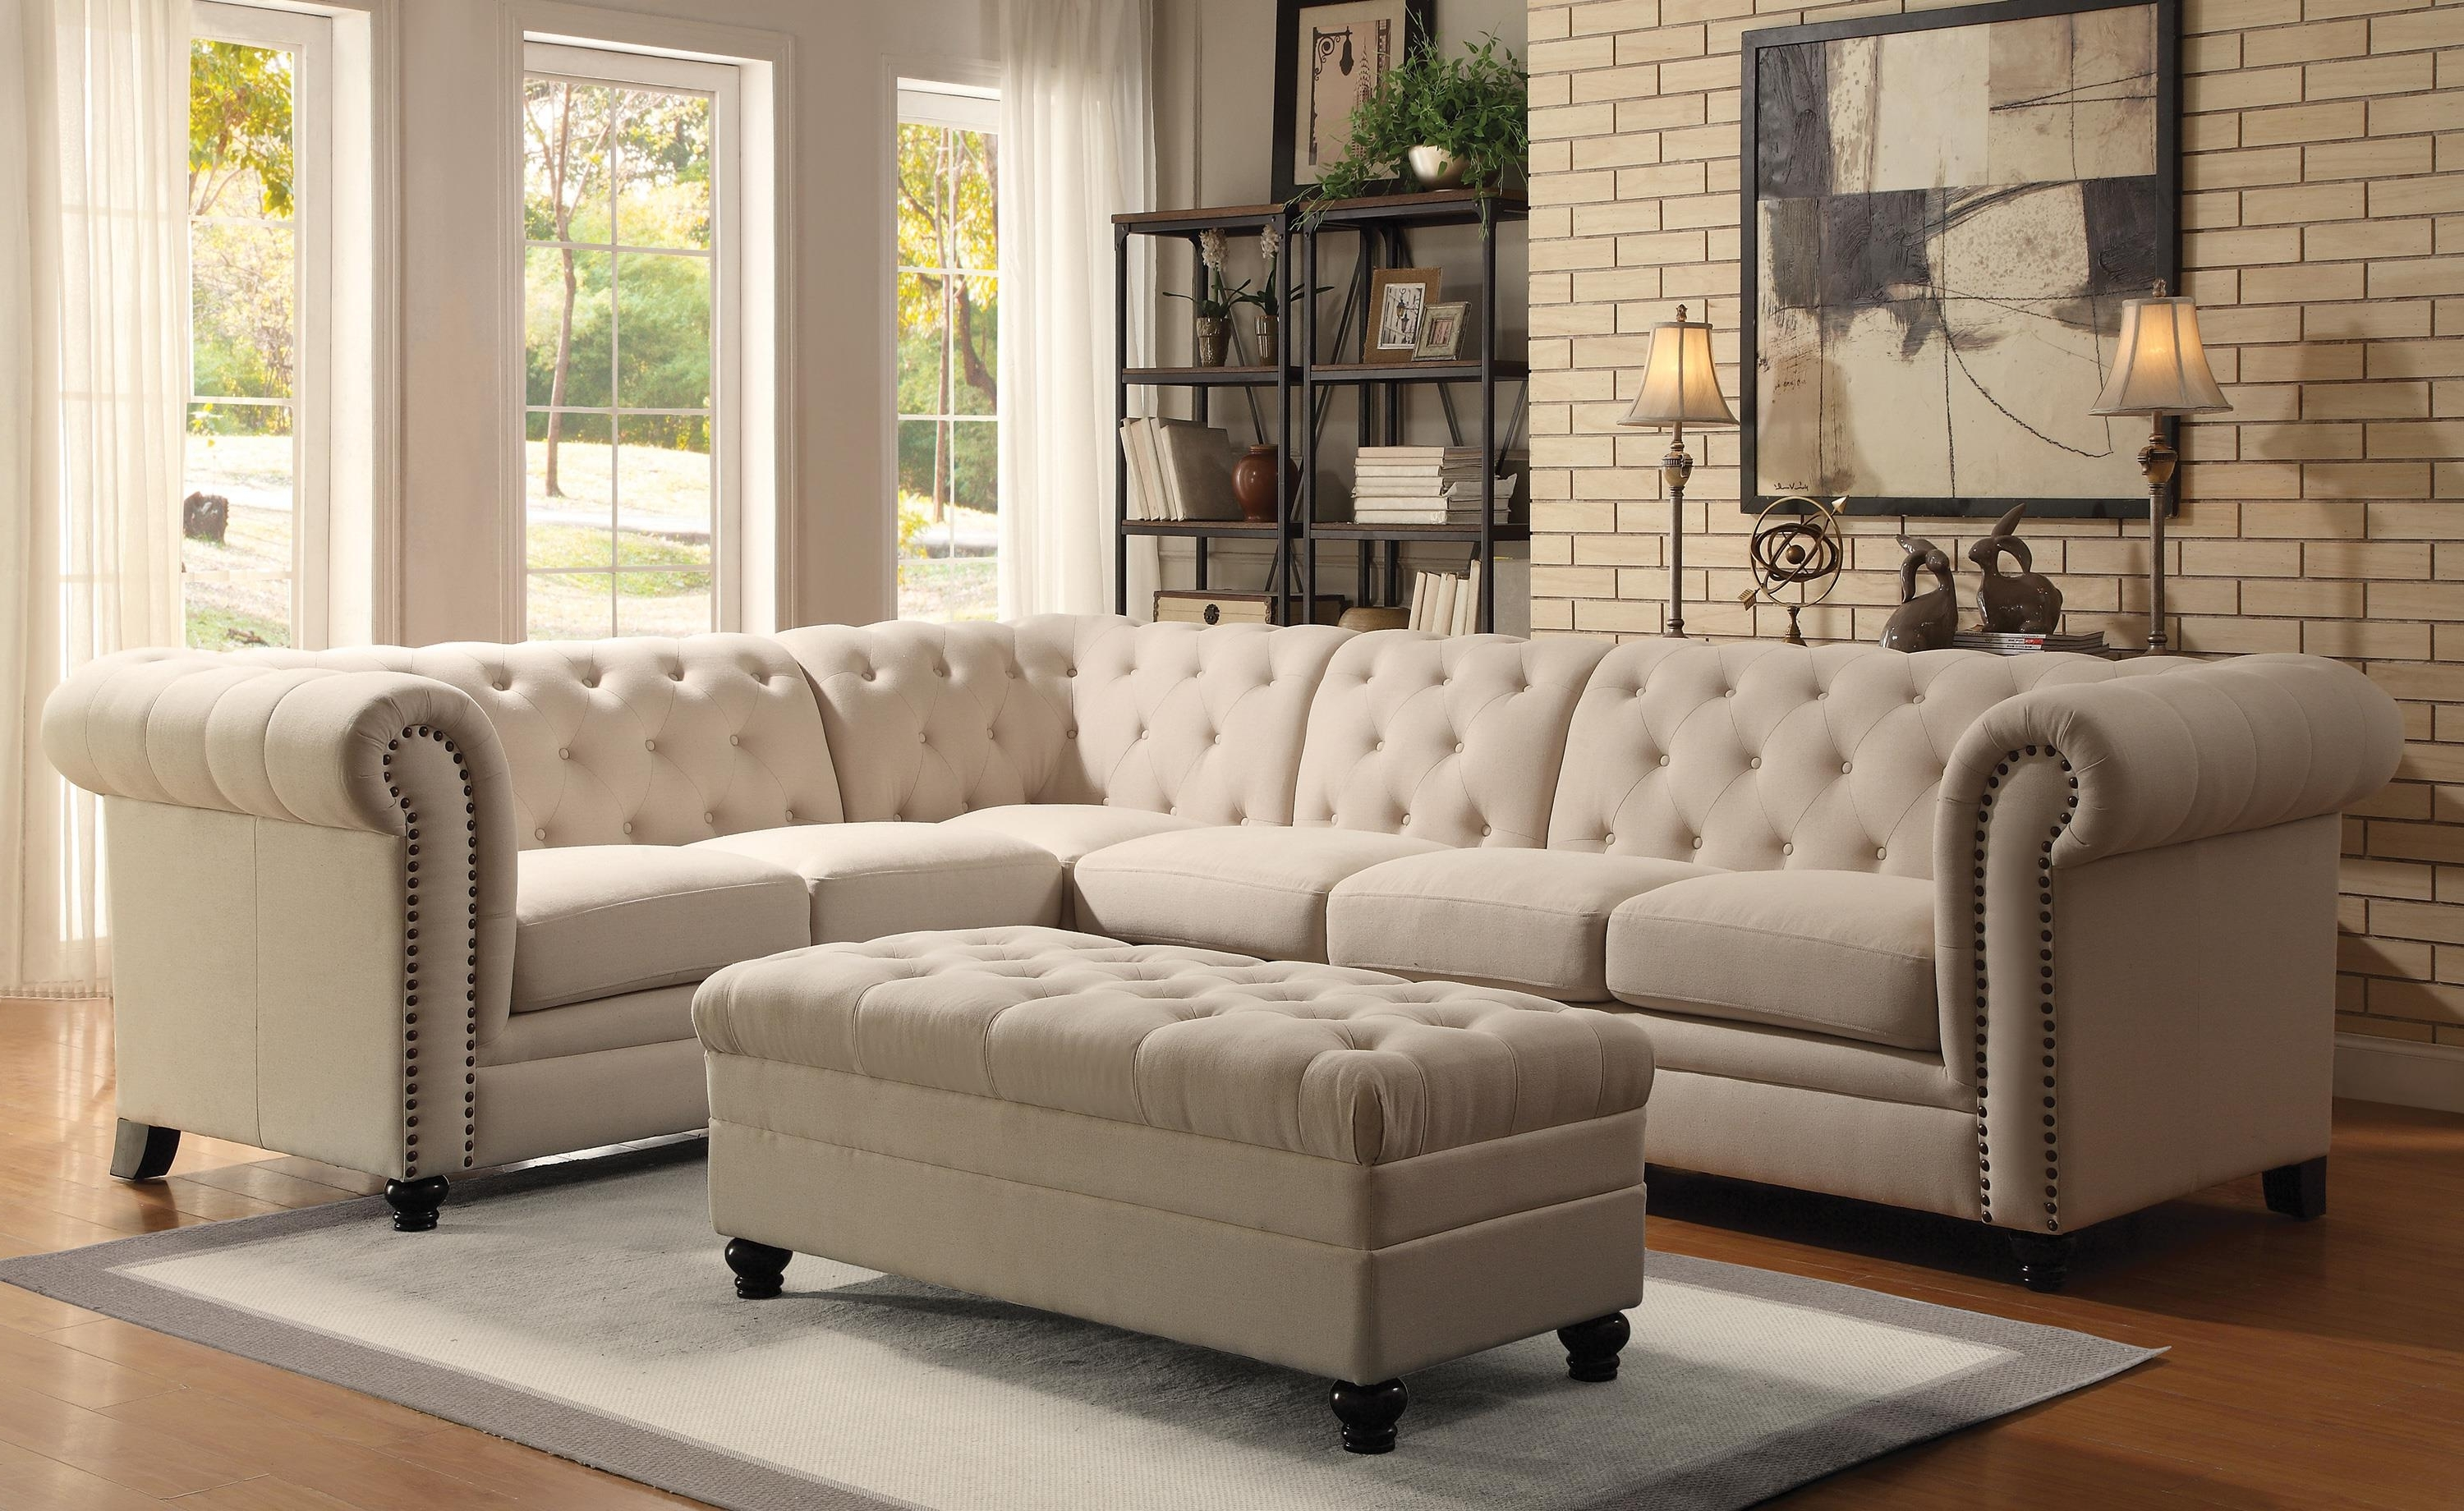 Light Brown Fabric Ashley Furniture Sectional L Sofa Sleeper With Within 2018 Ashley Tufted Sofas (View 3 of 20)